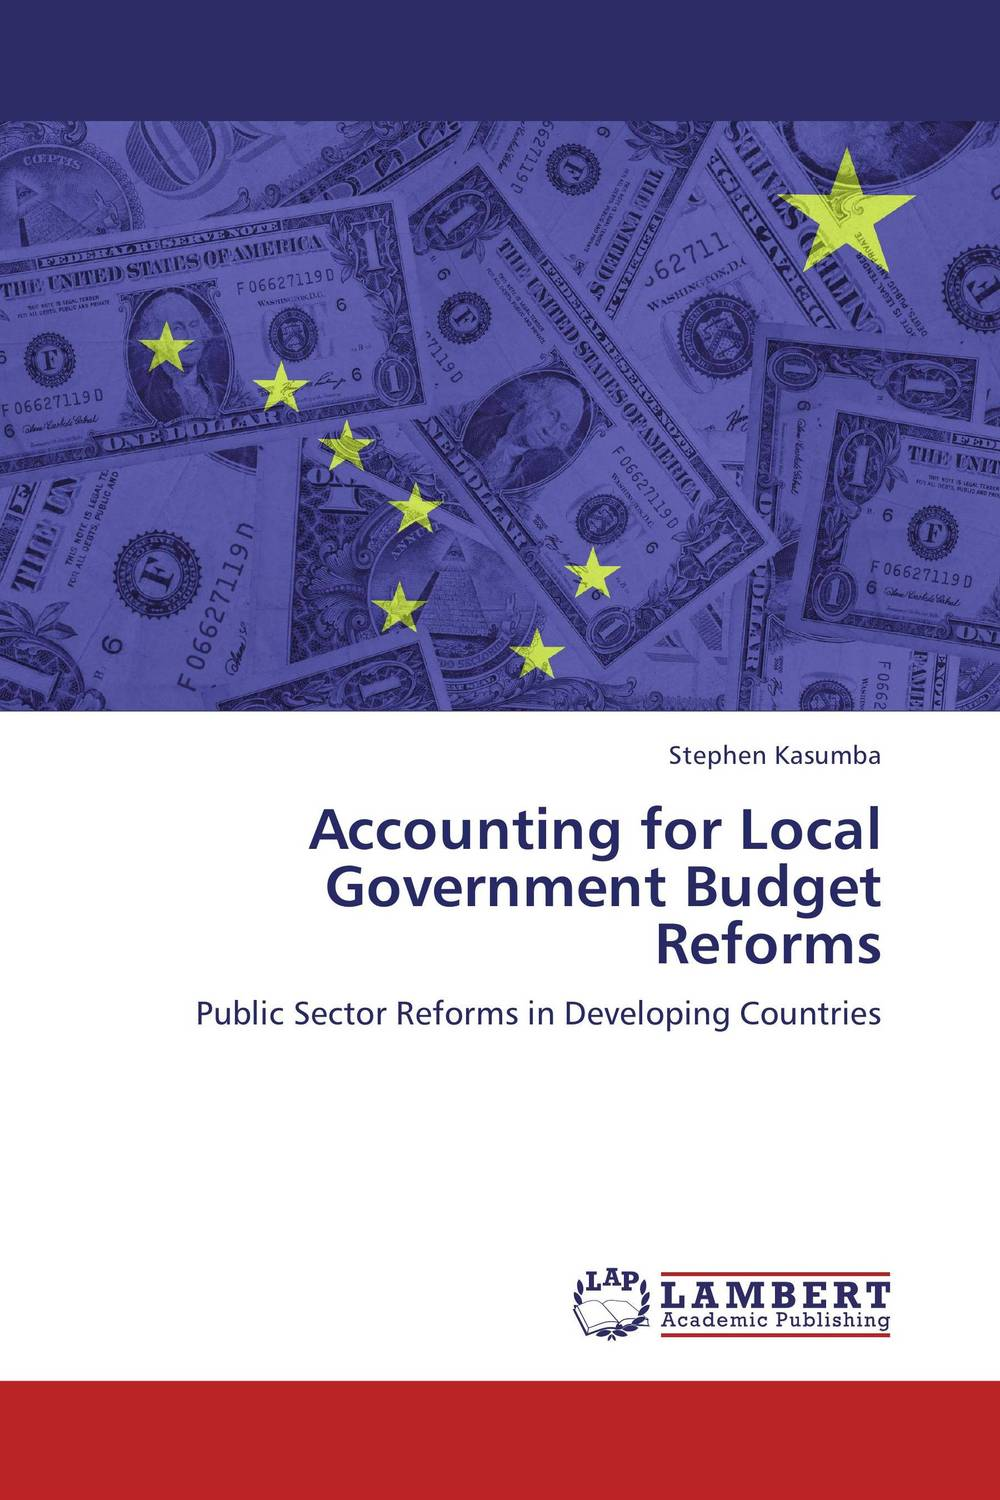 все цены на Accounting for Local Government Budget Reforms в интернете